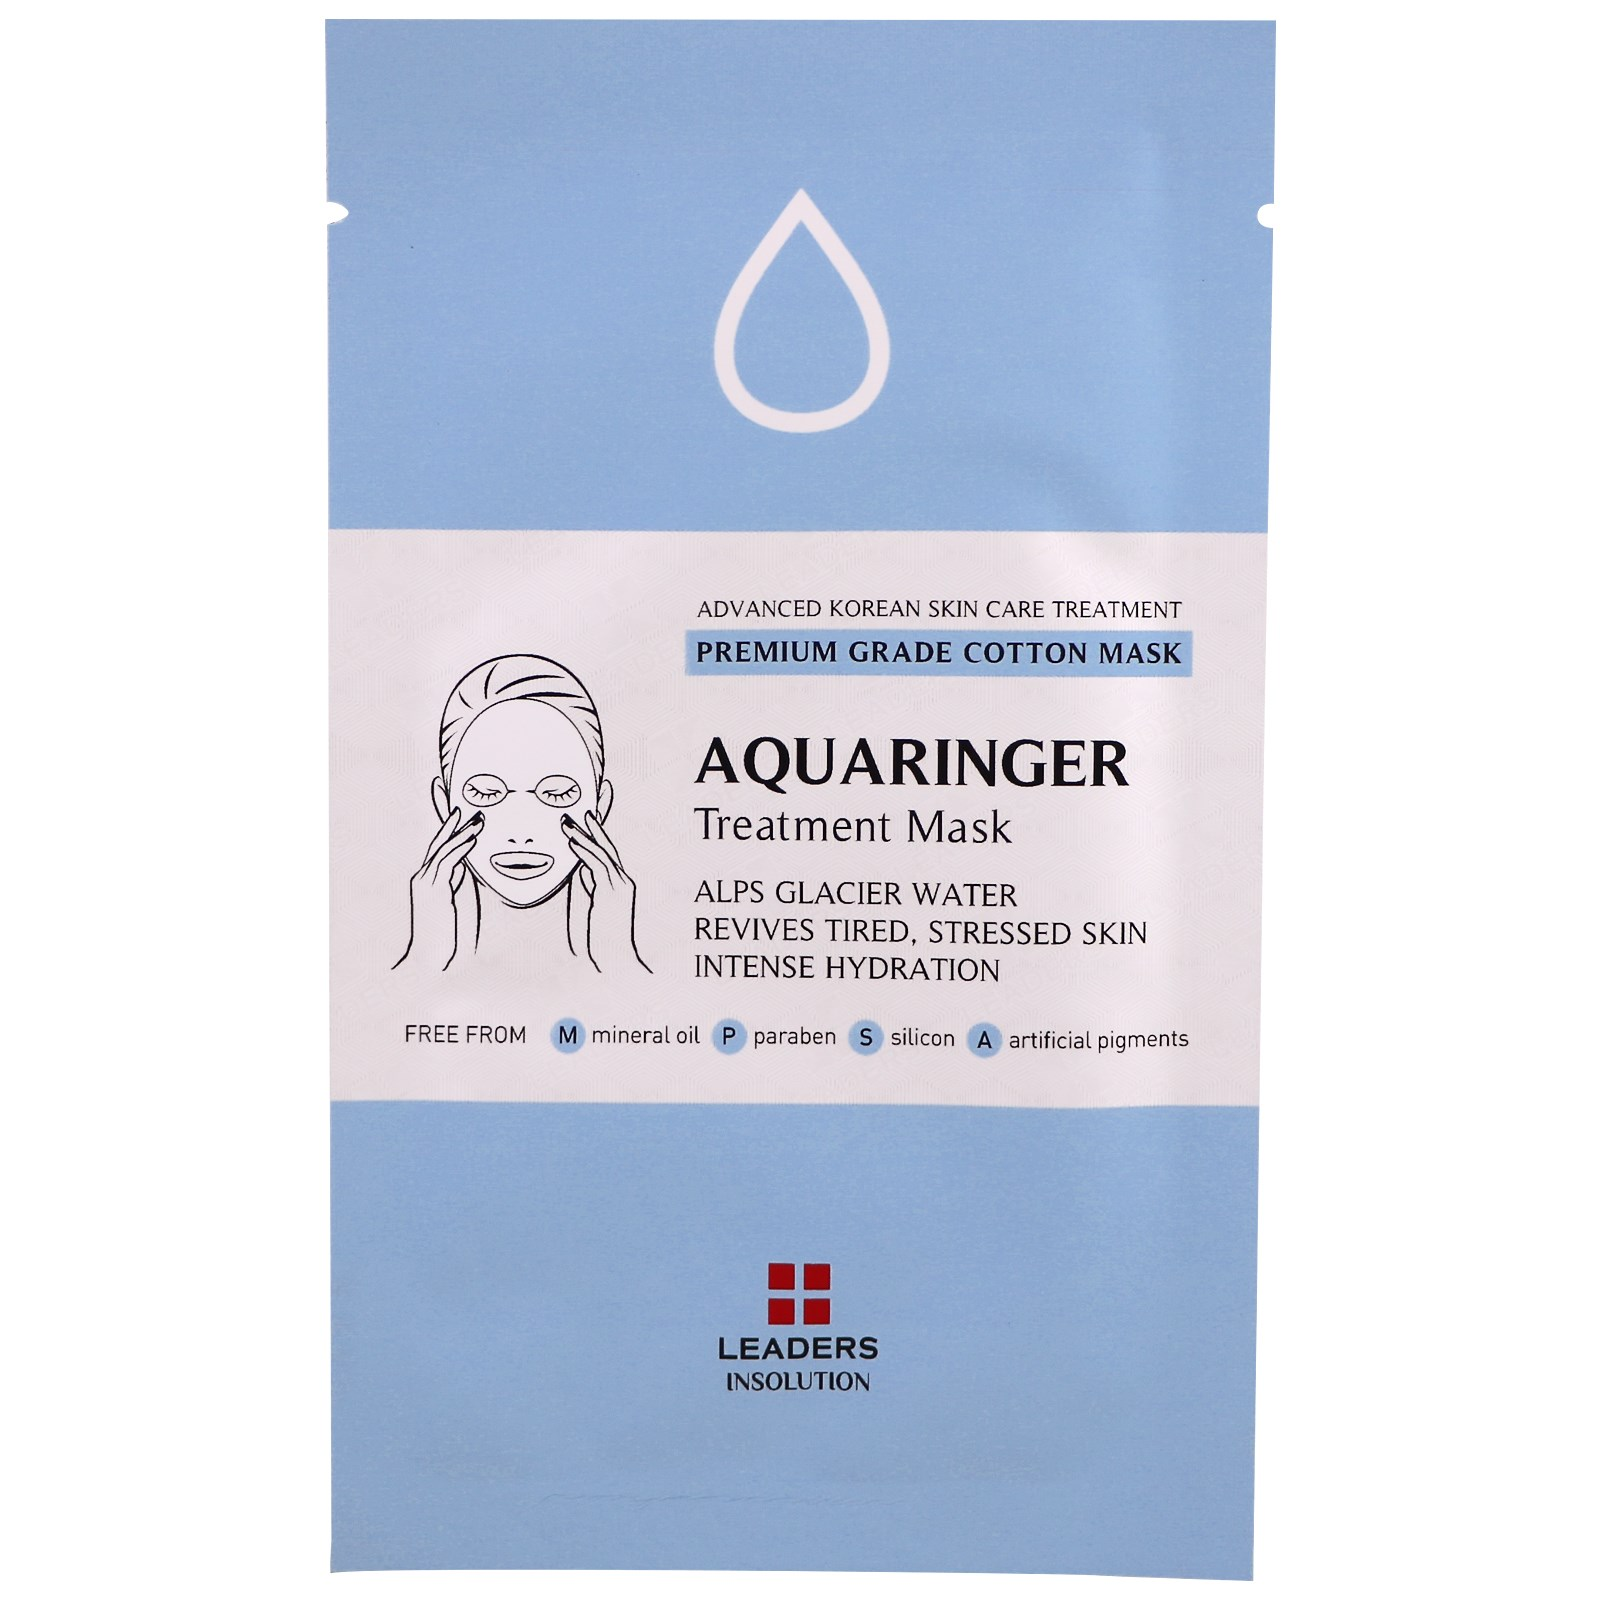 Leaders, Aquaringer Treatment Mask, 1 Mask